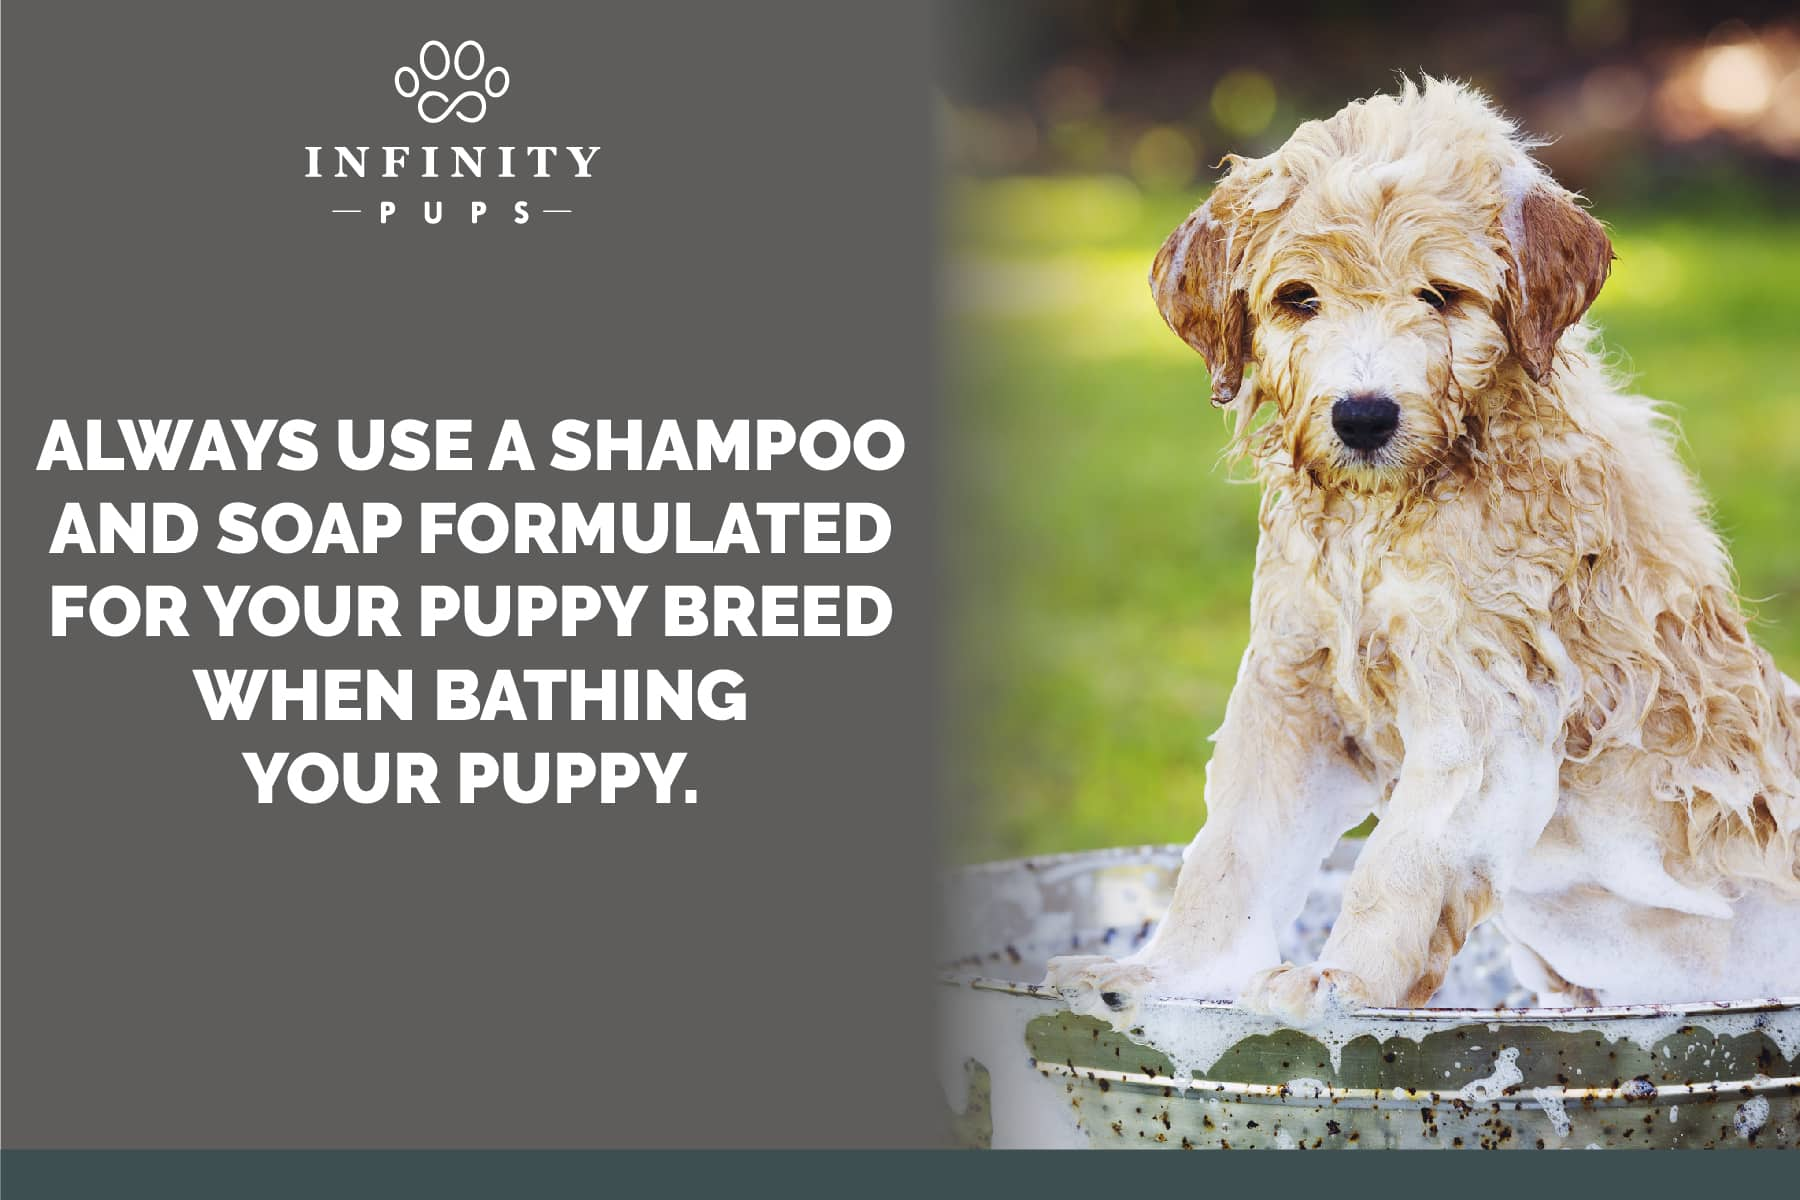 use a shampoo formulated for puppies and dogs